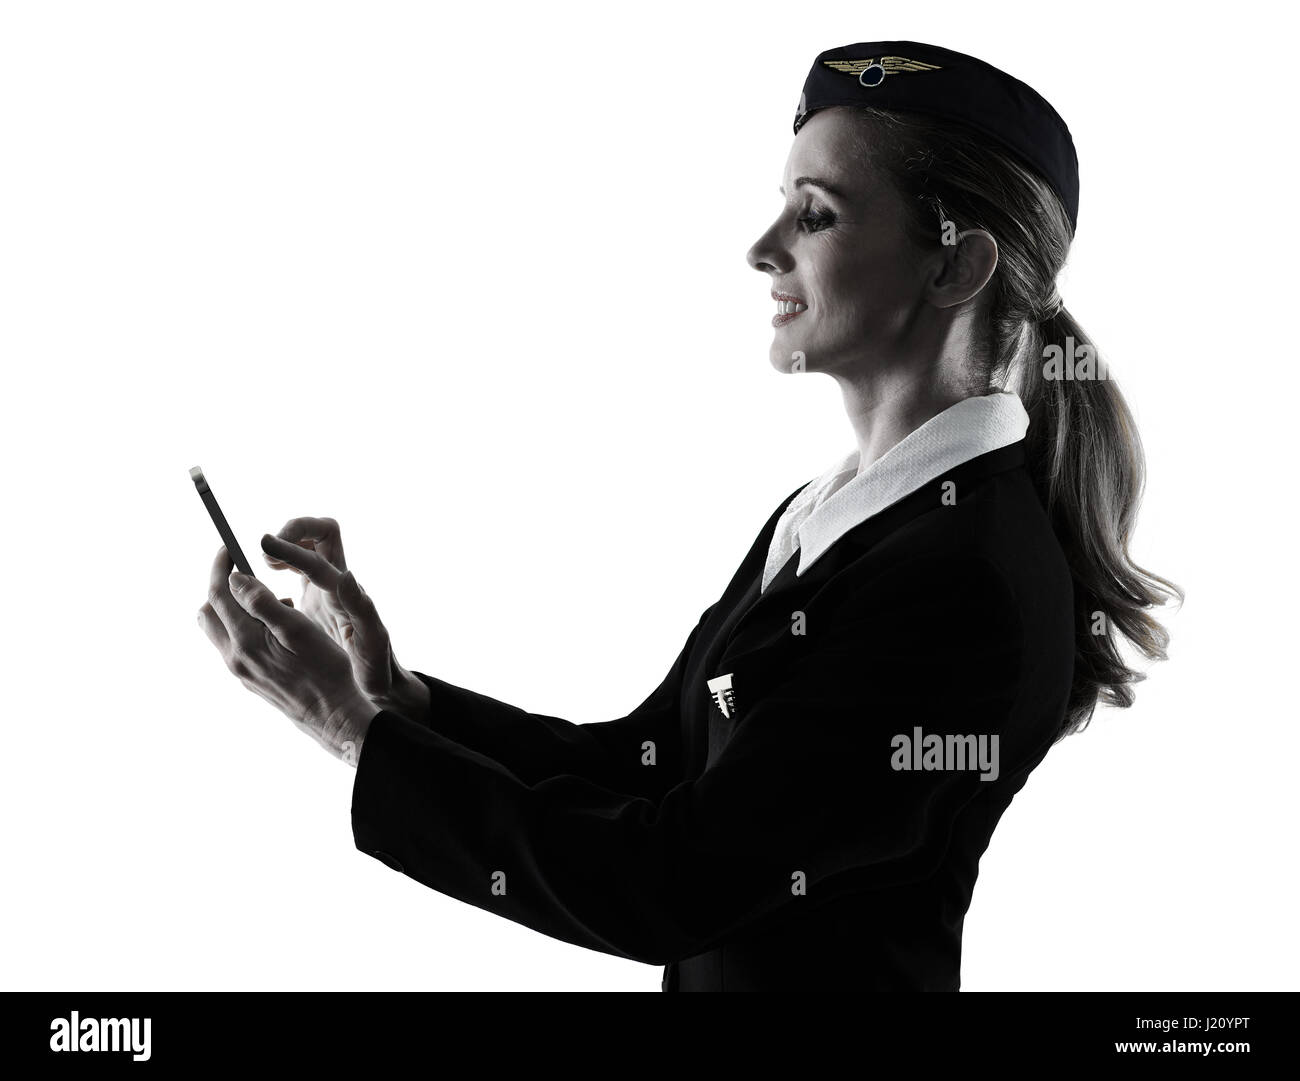 one caucasian Stewardess cabin crew  woman on the phone isolated on white background in  silhouette - Stock Image